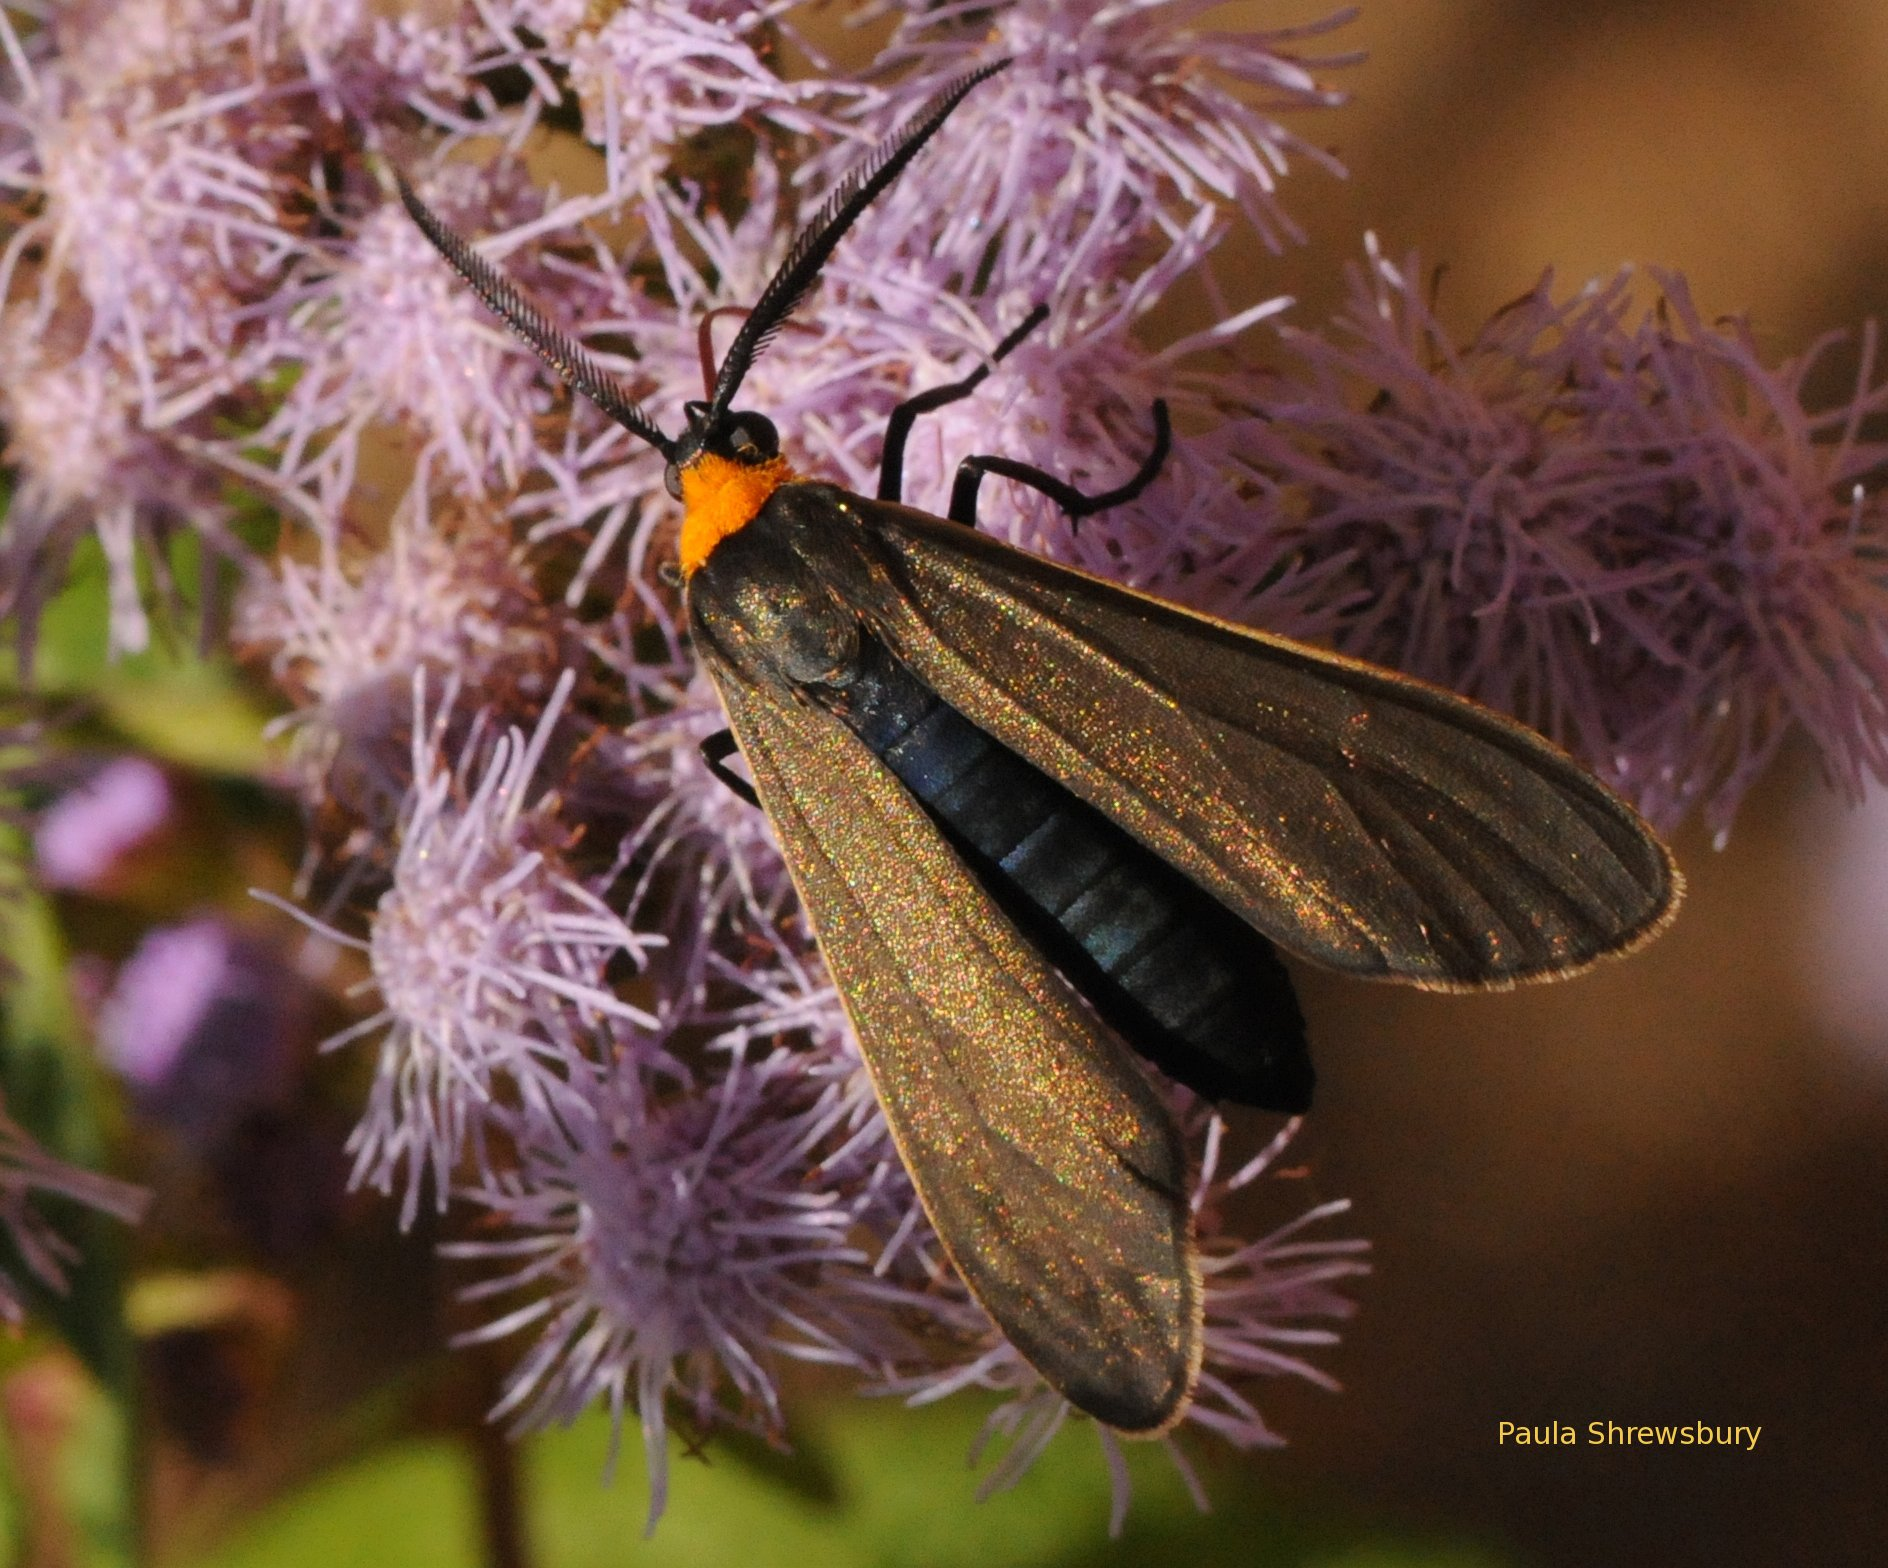 The beautiful yellow-collared scape moth is a bold day time flier. Photo: Paula Shrewsbury